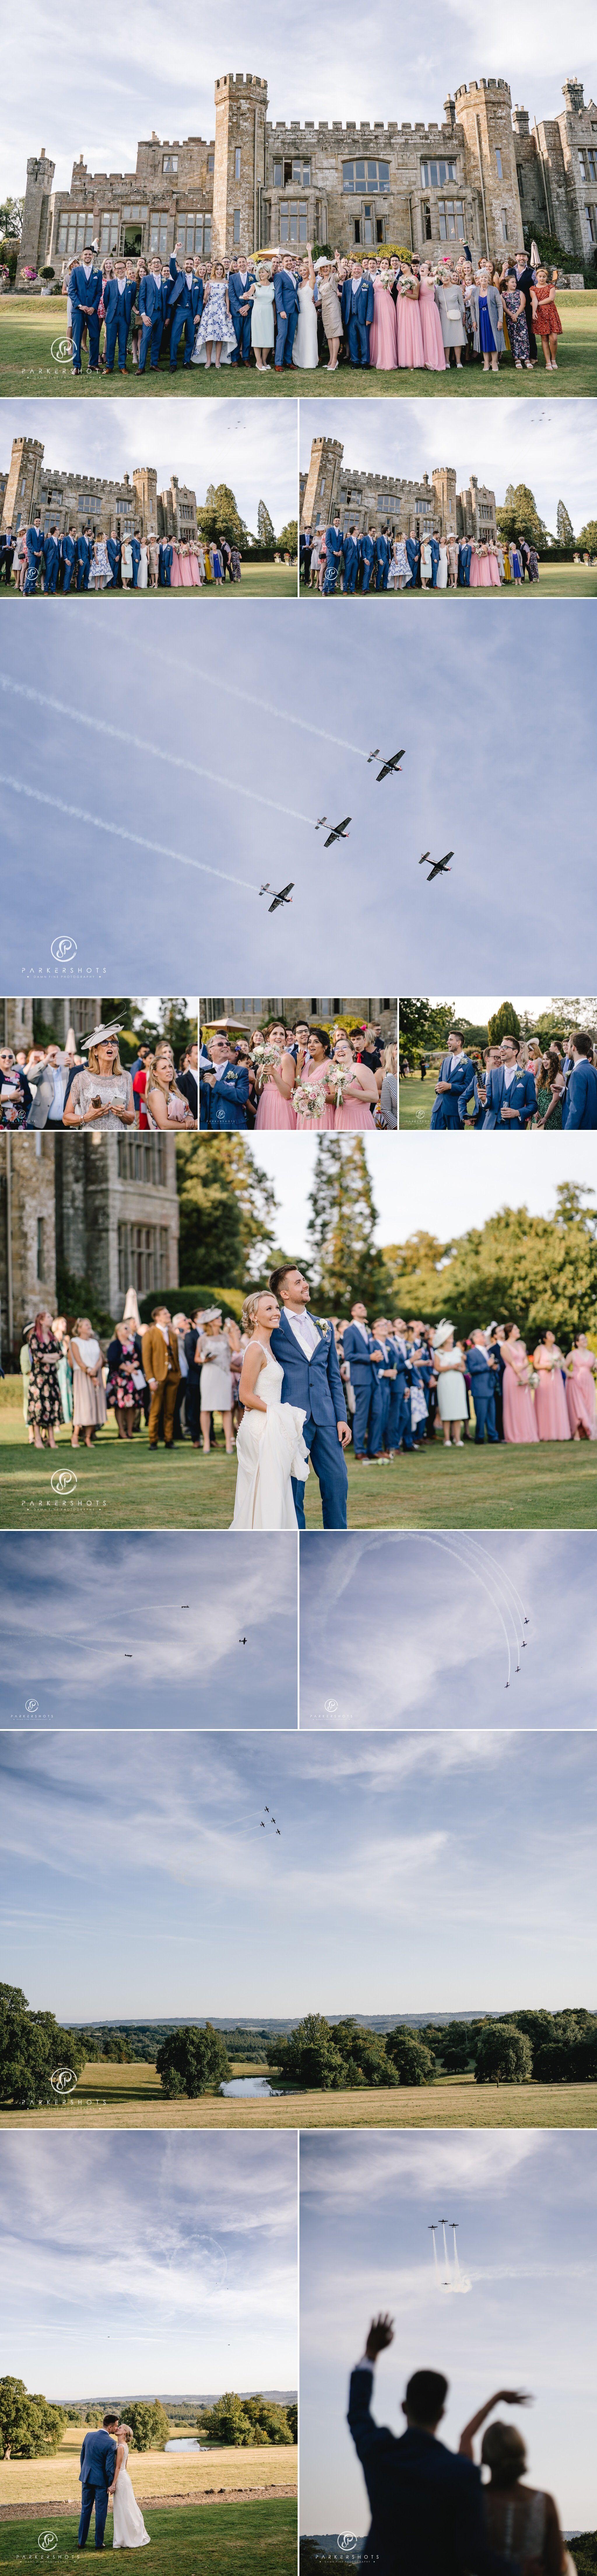 Wadhurst Castle Wedding Photographer The Blades